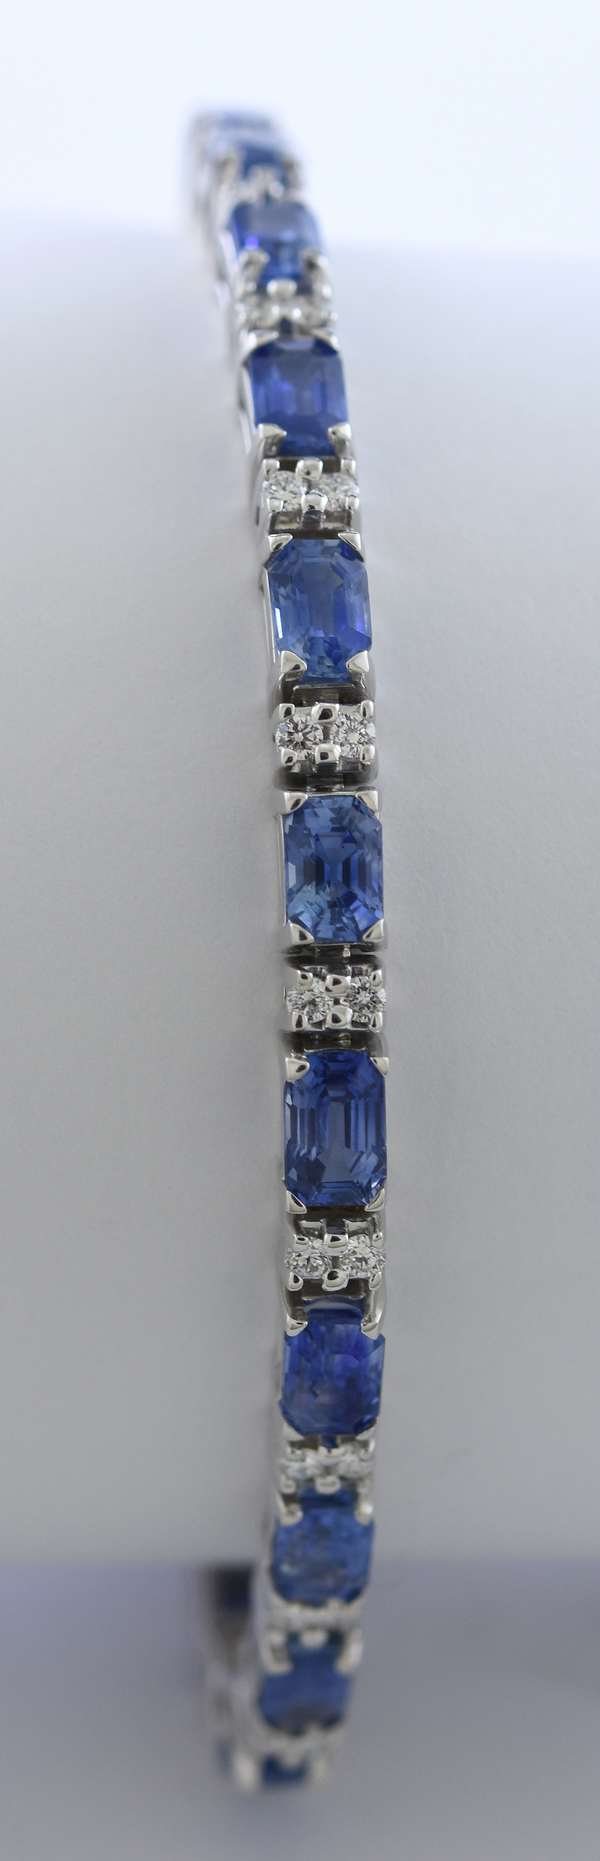 Lovely 18k white gold sapphire and diamond bracelet, approx. 15 ctw emerald cut sapphires and 1.5 ctw diamonds, 8